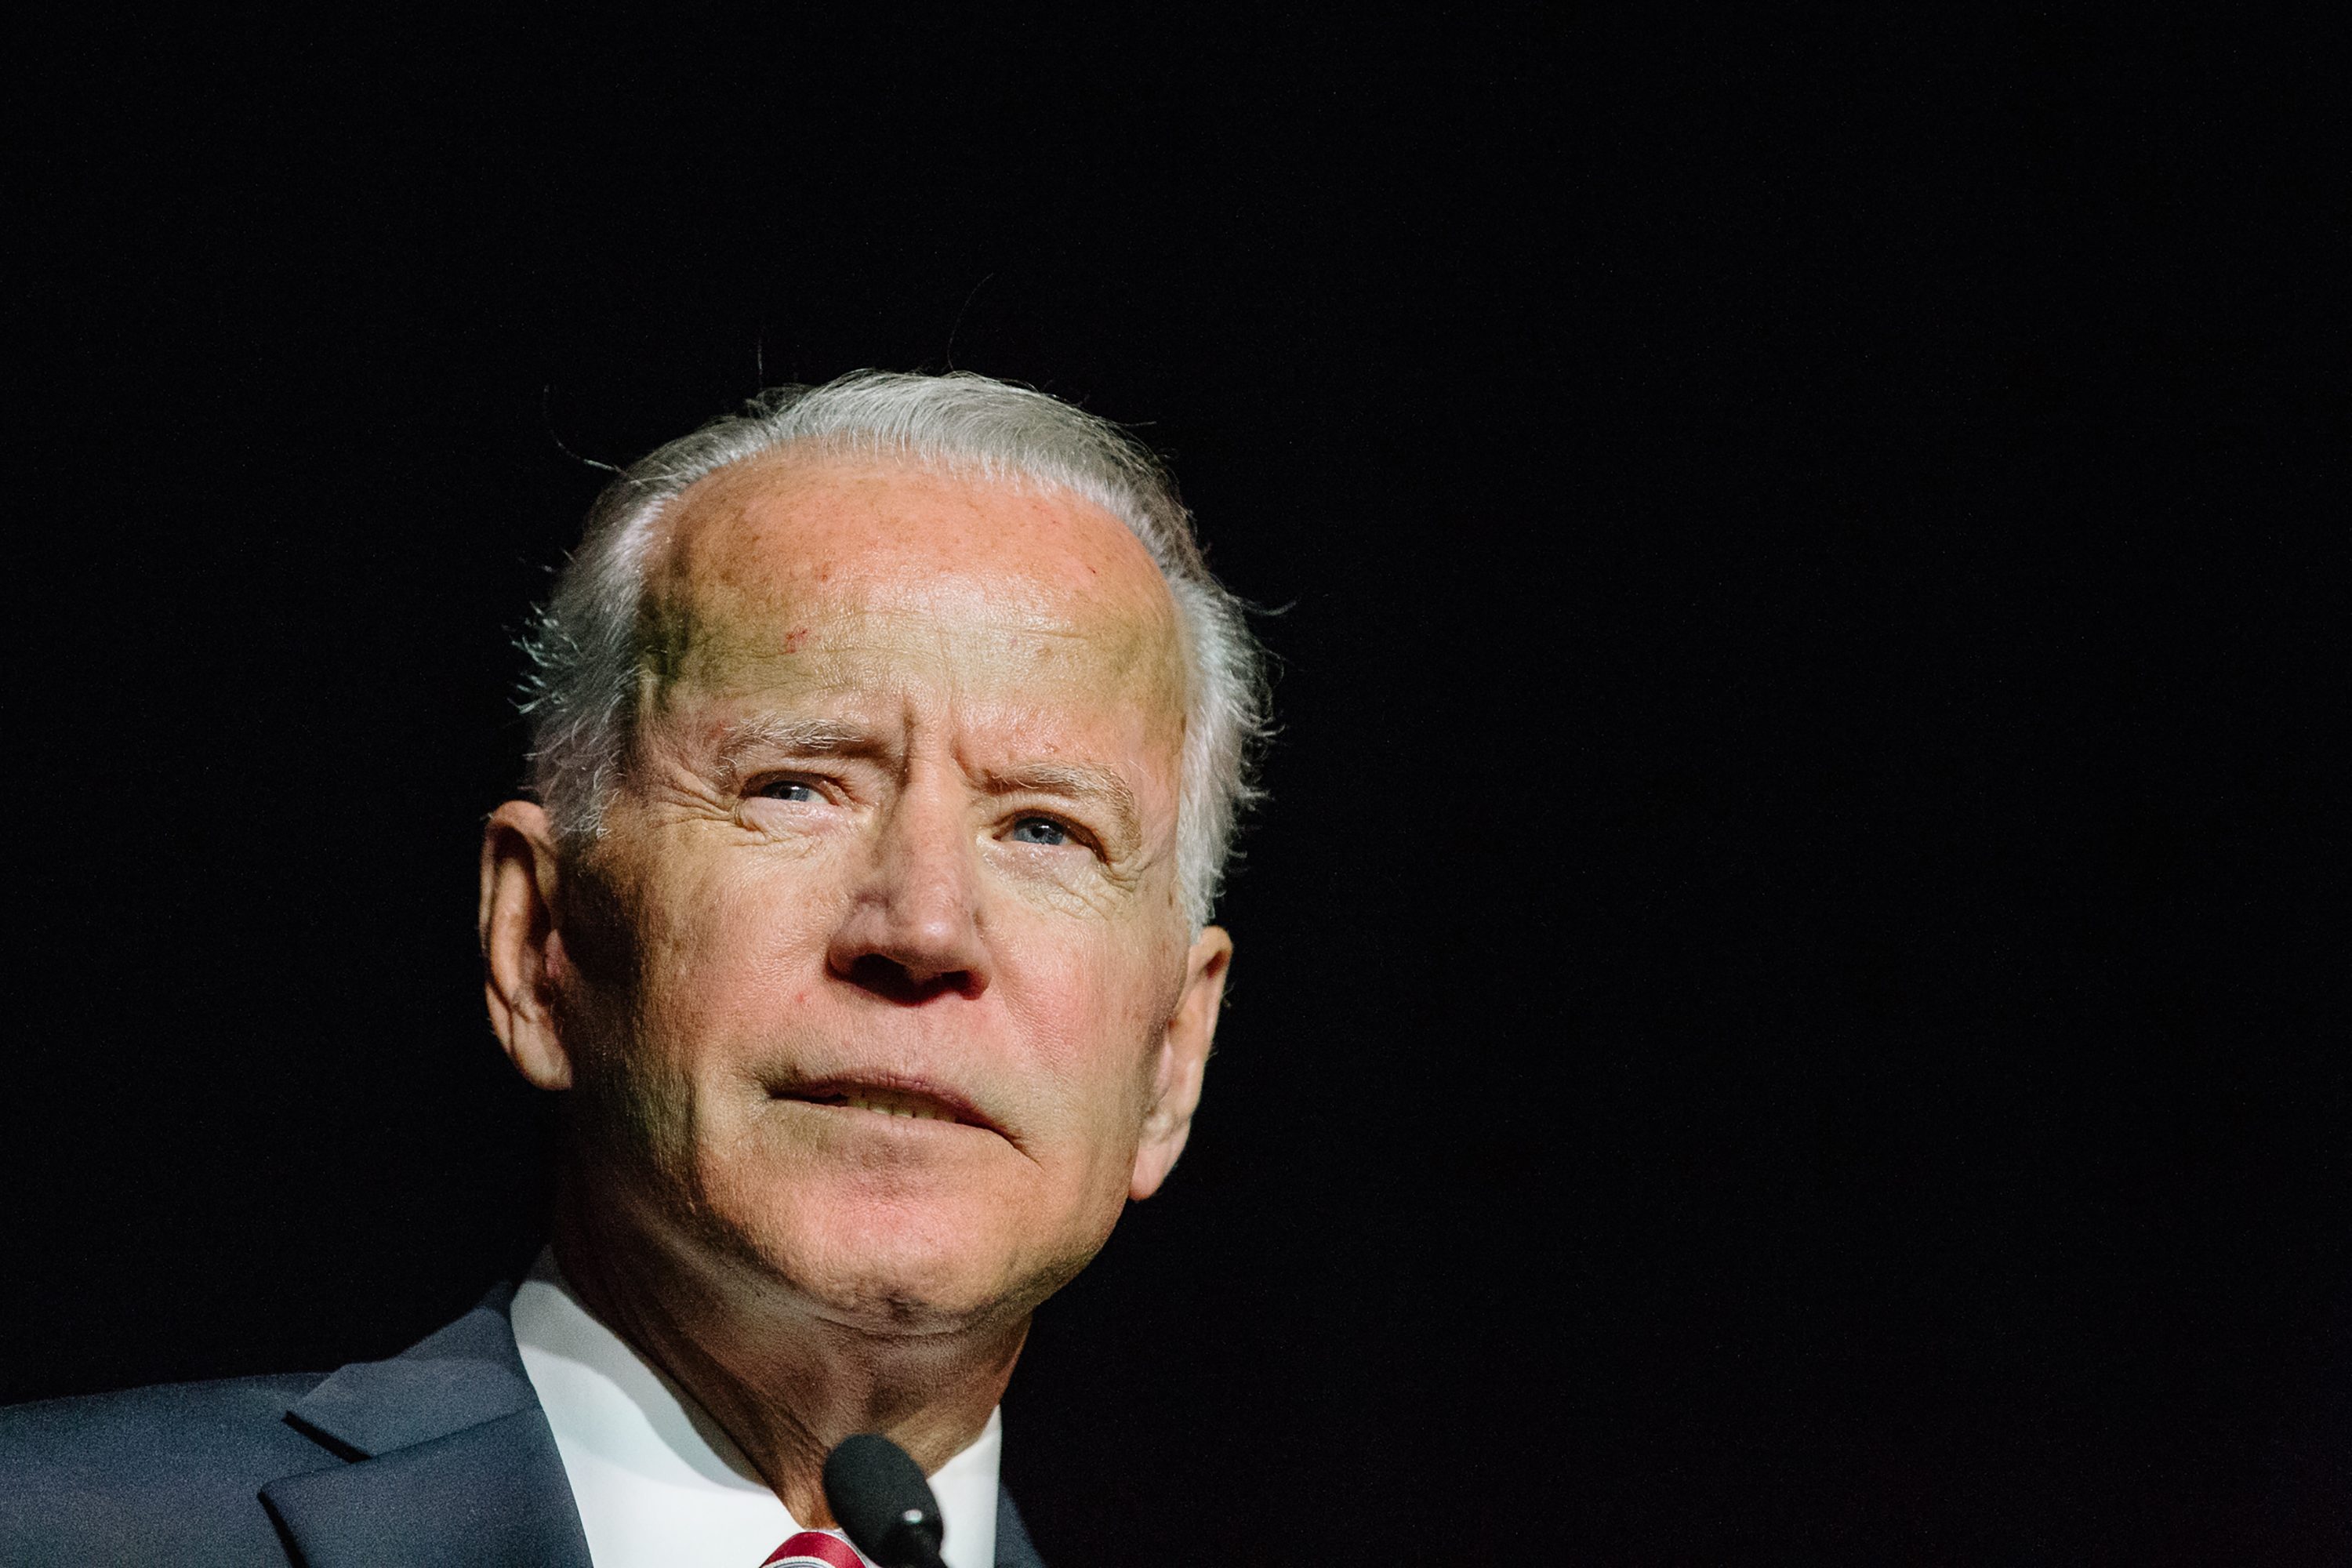 Opinion Joe Biden And Bernie Sanders Are Too Old To Be President The Washington Post